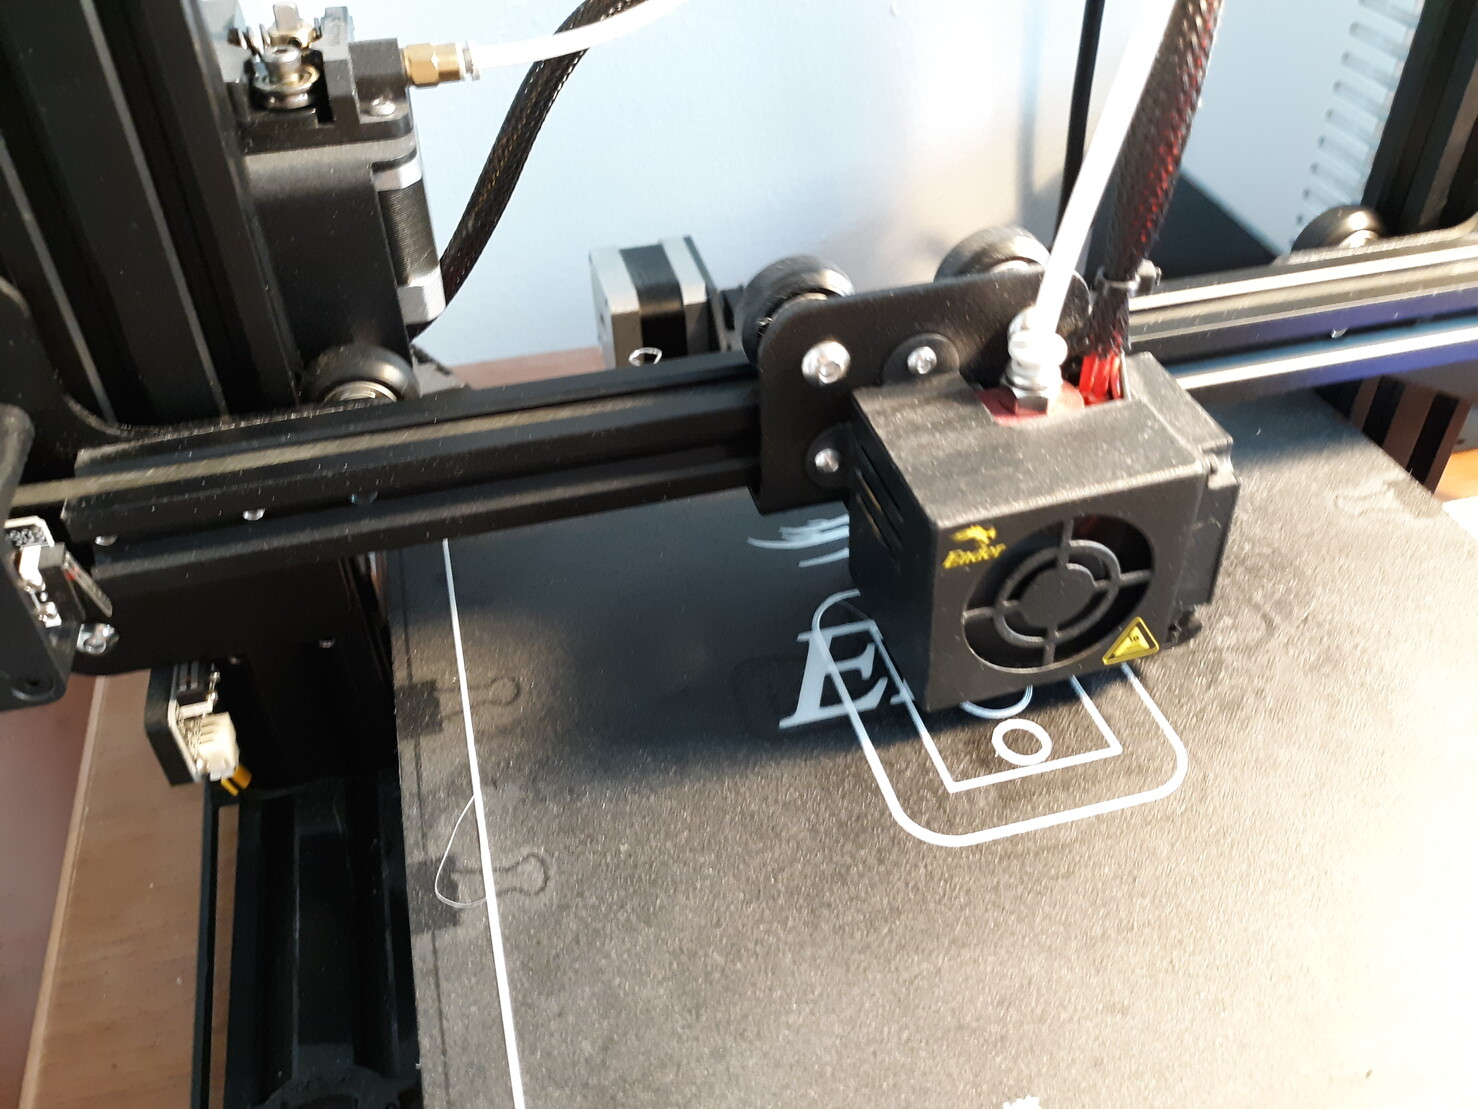 Picture of my 3D printer working on the part